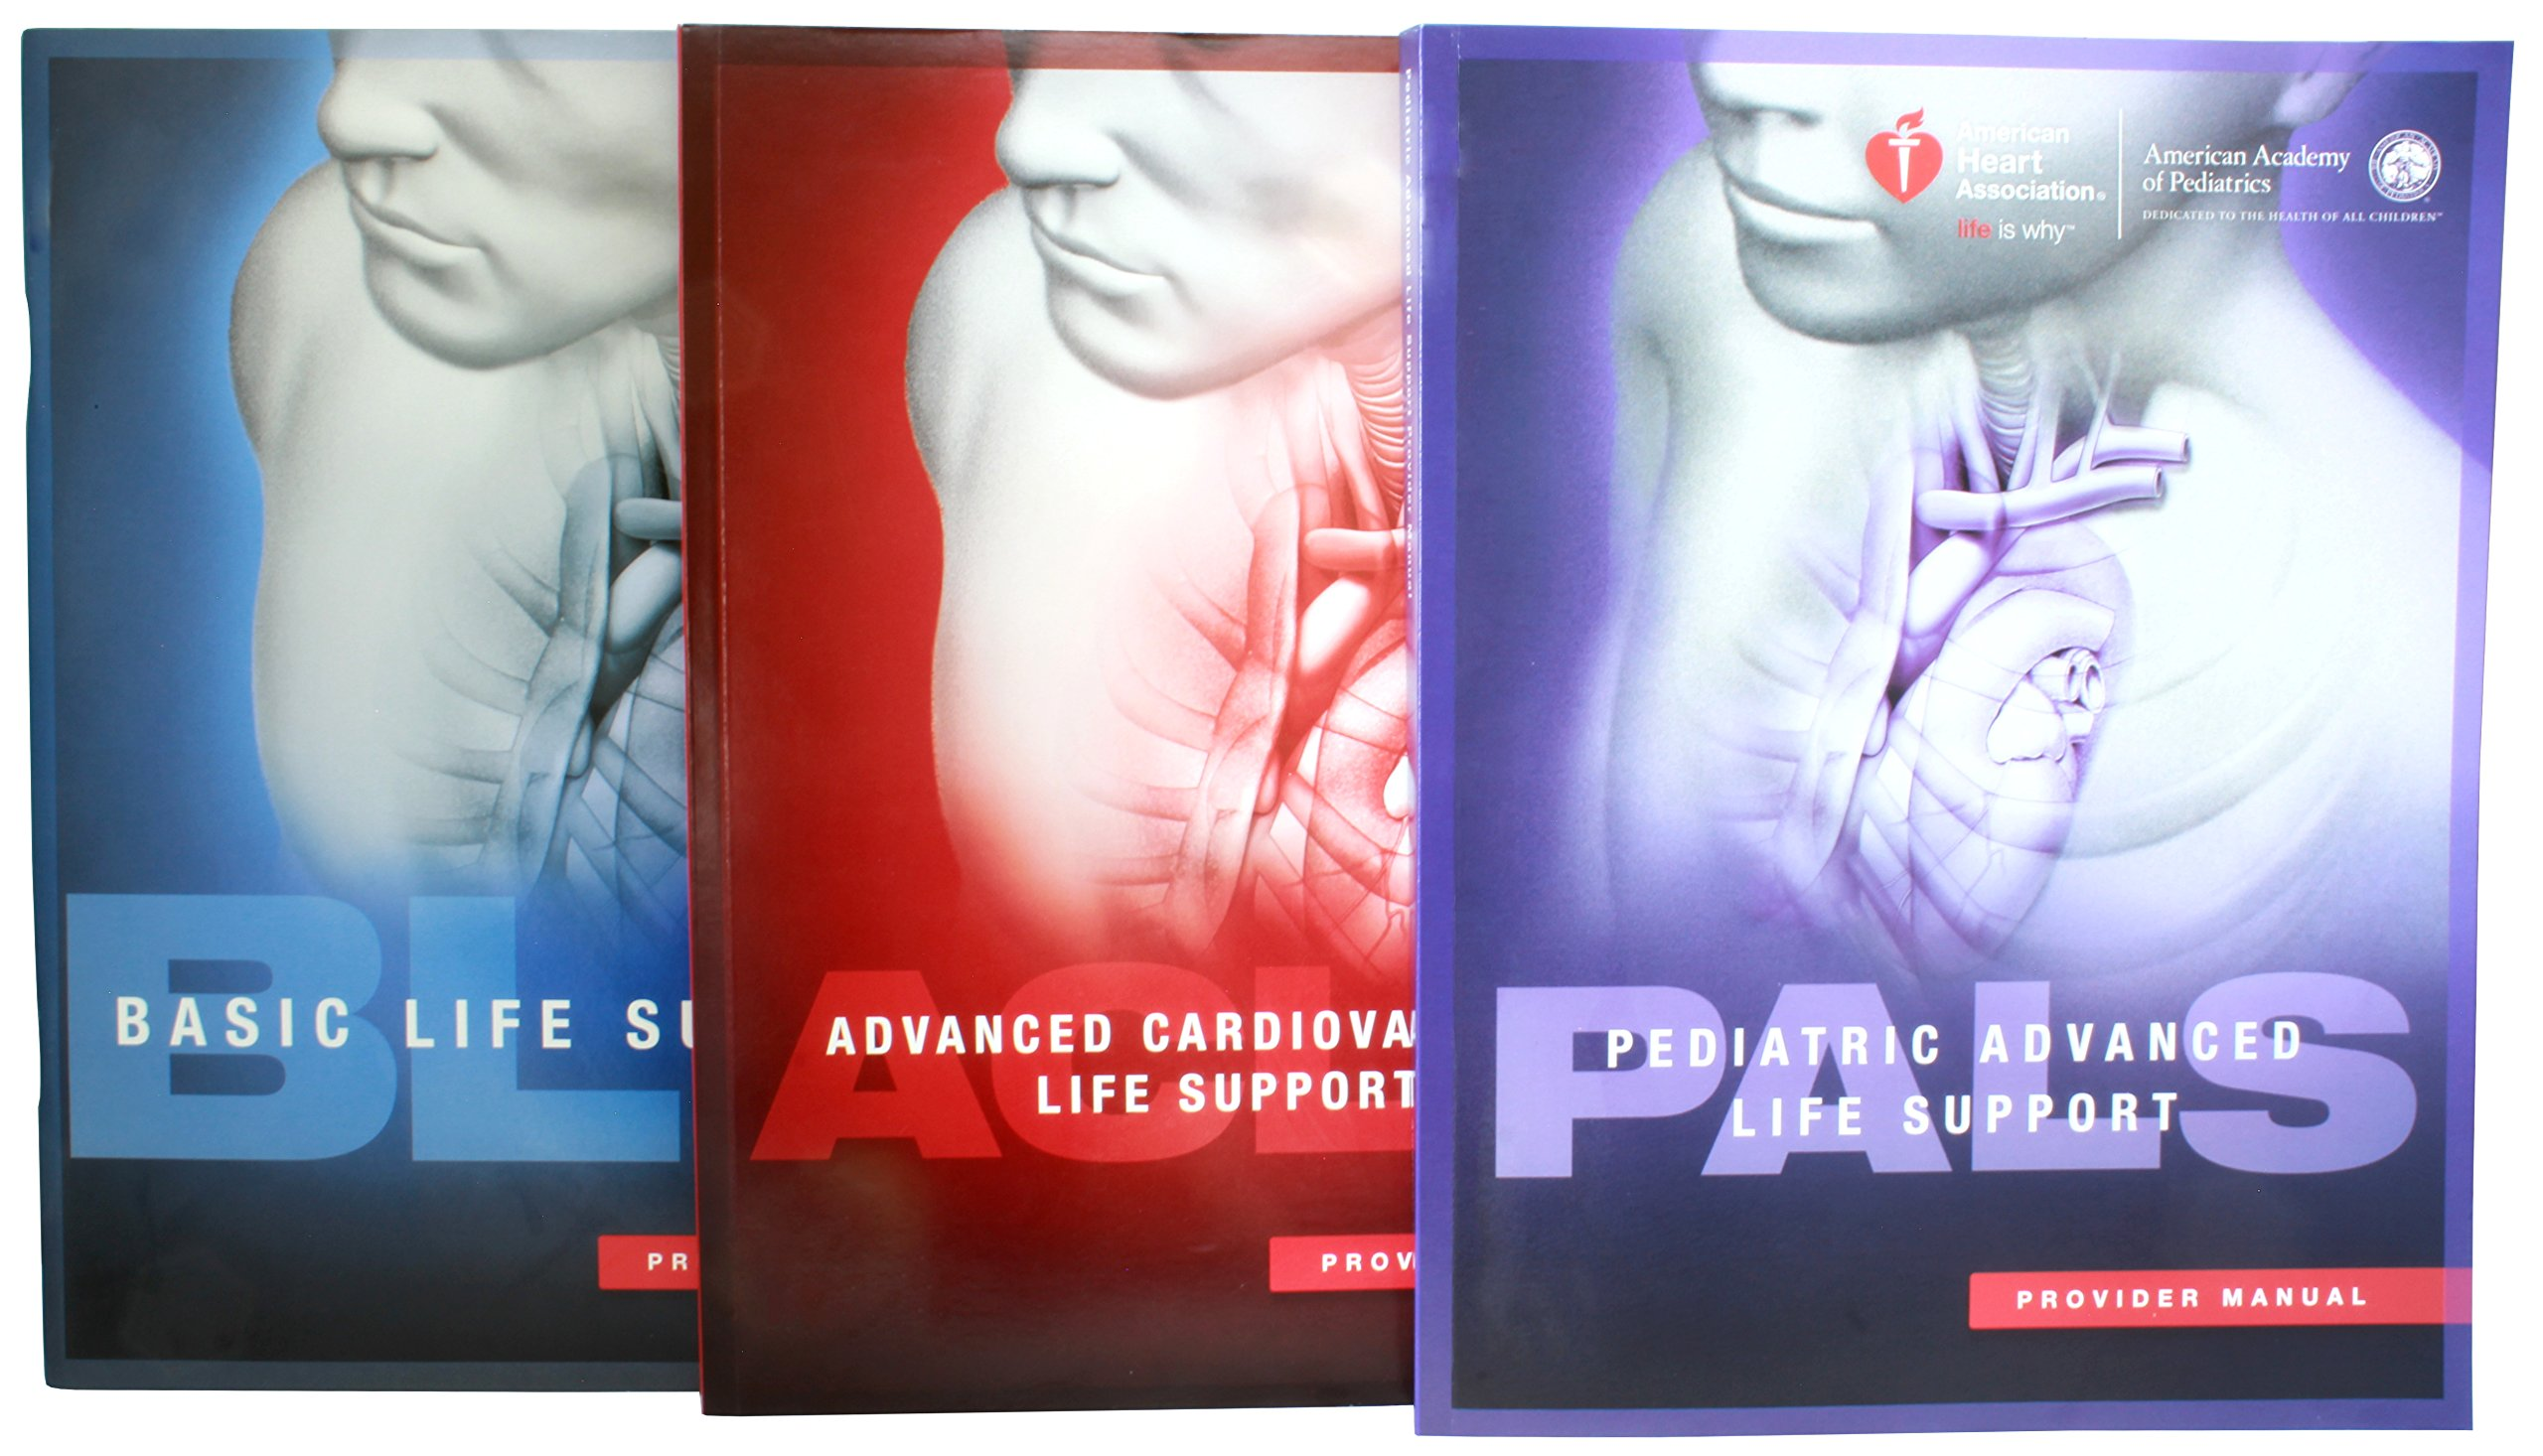 Provider manual bundle 2015 guidelines basic life support bls provider manual bundle 2015 guidelines basic life support bls advaned cardiovascular life support acls pediatric advanced life support pals w 1betcityfo Gallery